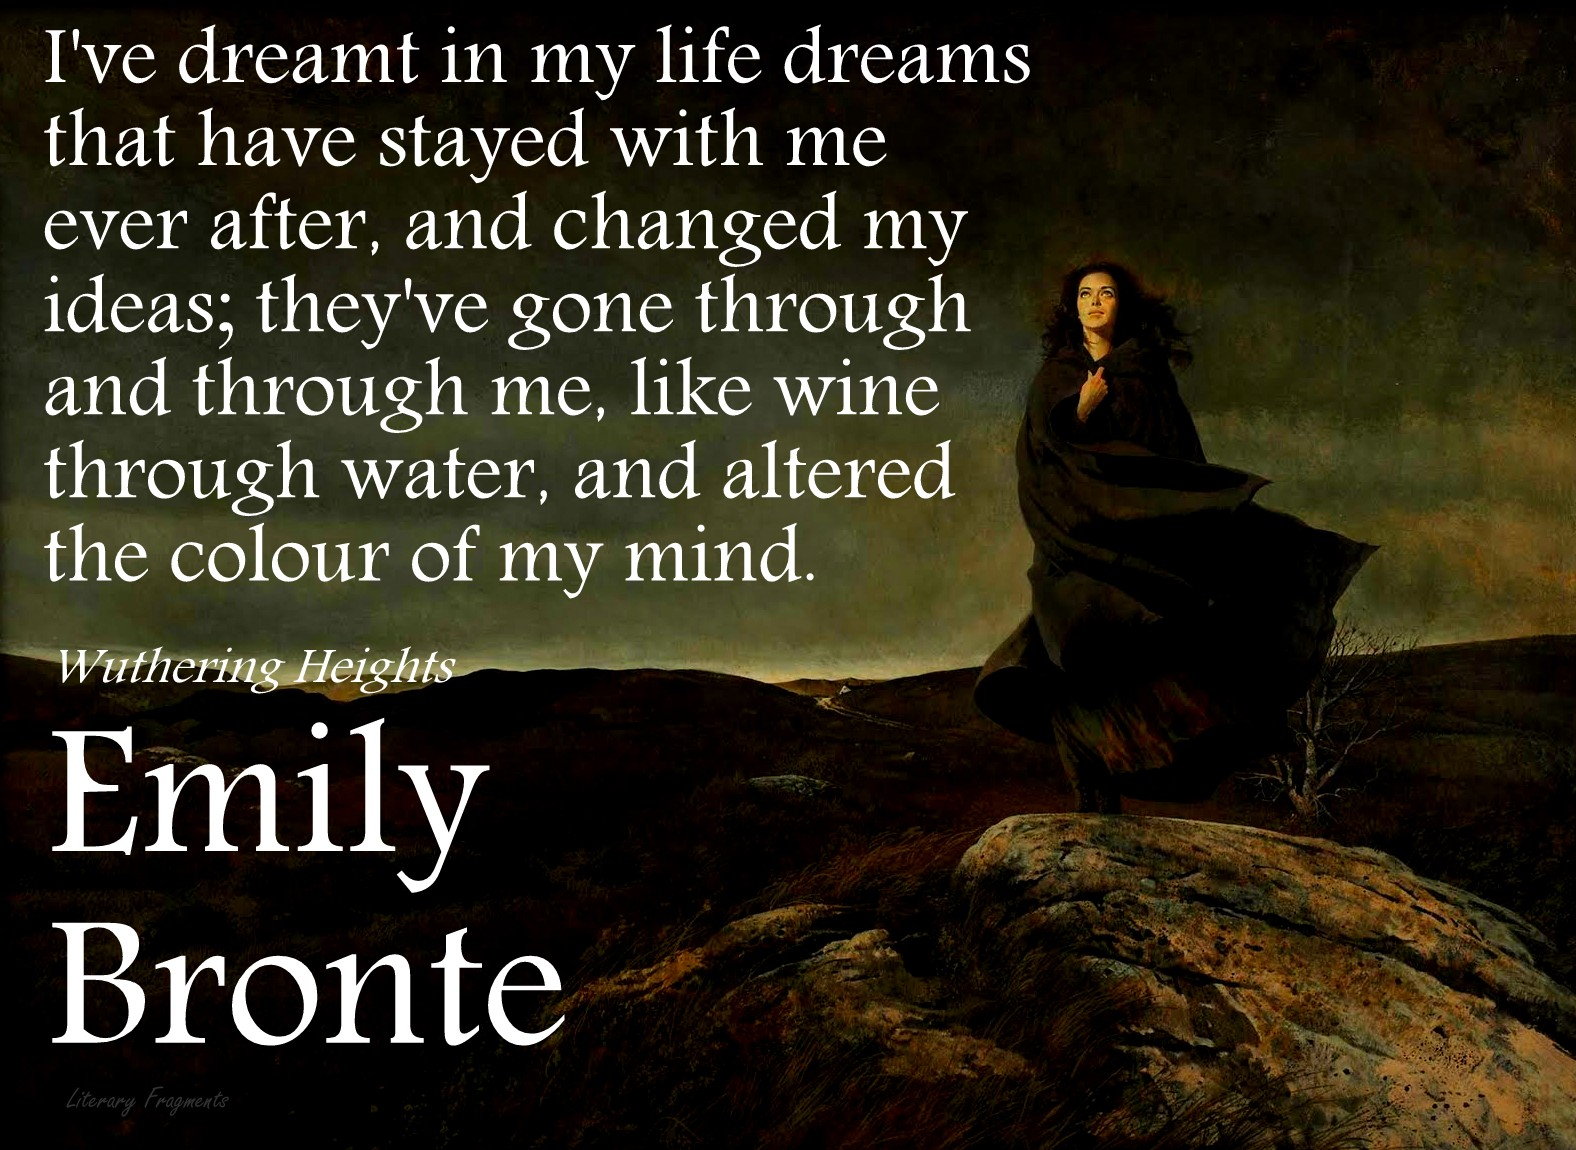 description of wuthering heights essay Wuthering heights essay this quote is brought to life in emily bronte's wuthering heights where we see how with this description the reader can.